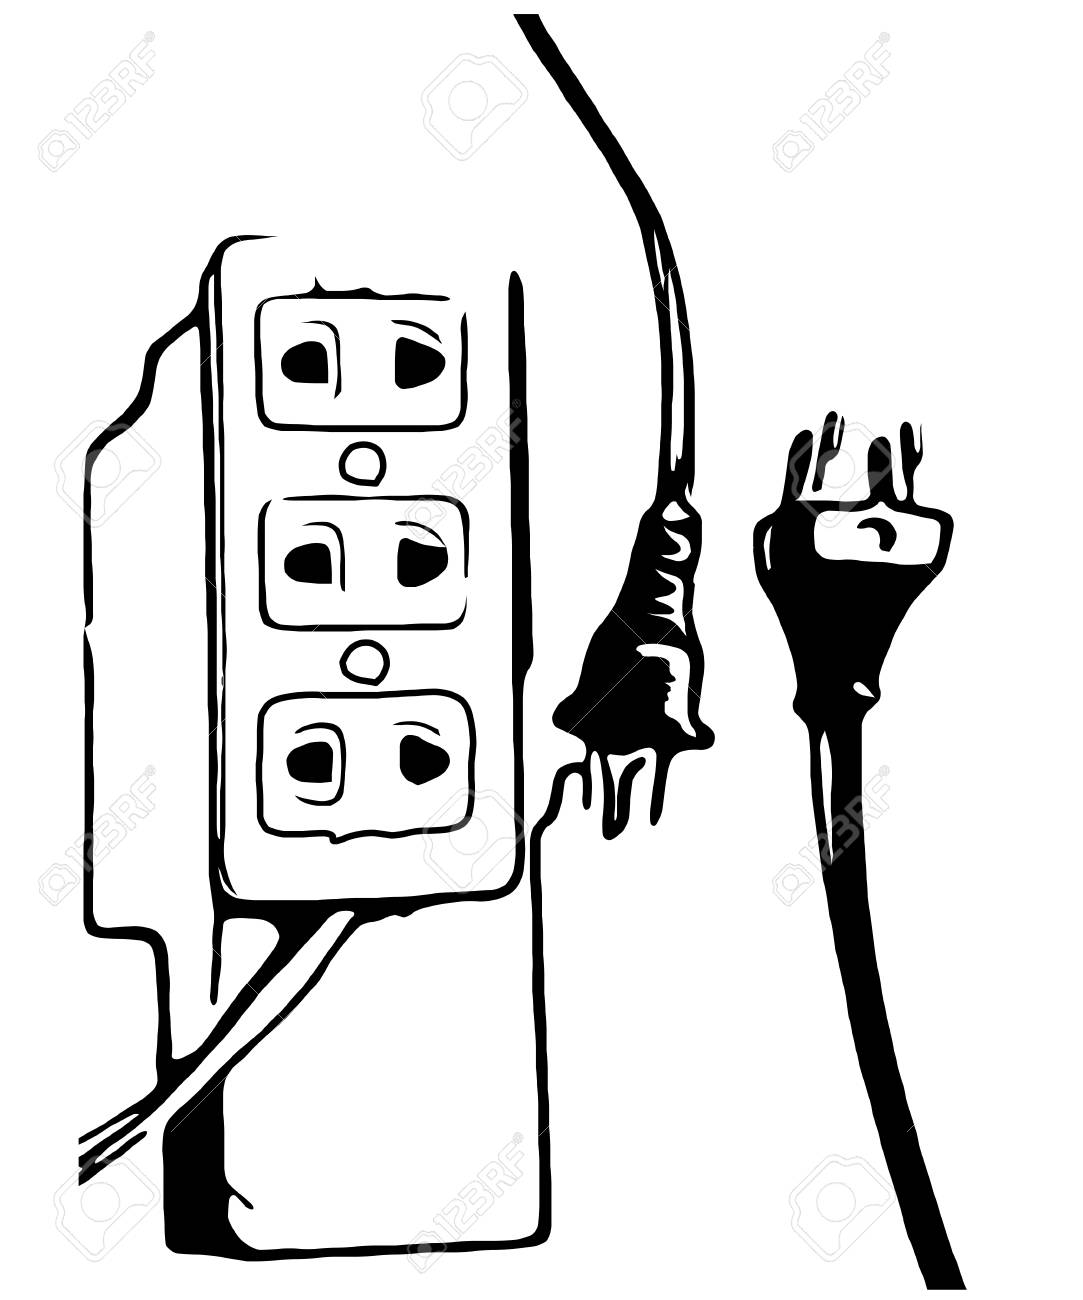 black white plug and outlet royalty free cliparts vectors and Network Cable Color black white plug and outlet stock vector 57145040